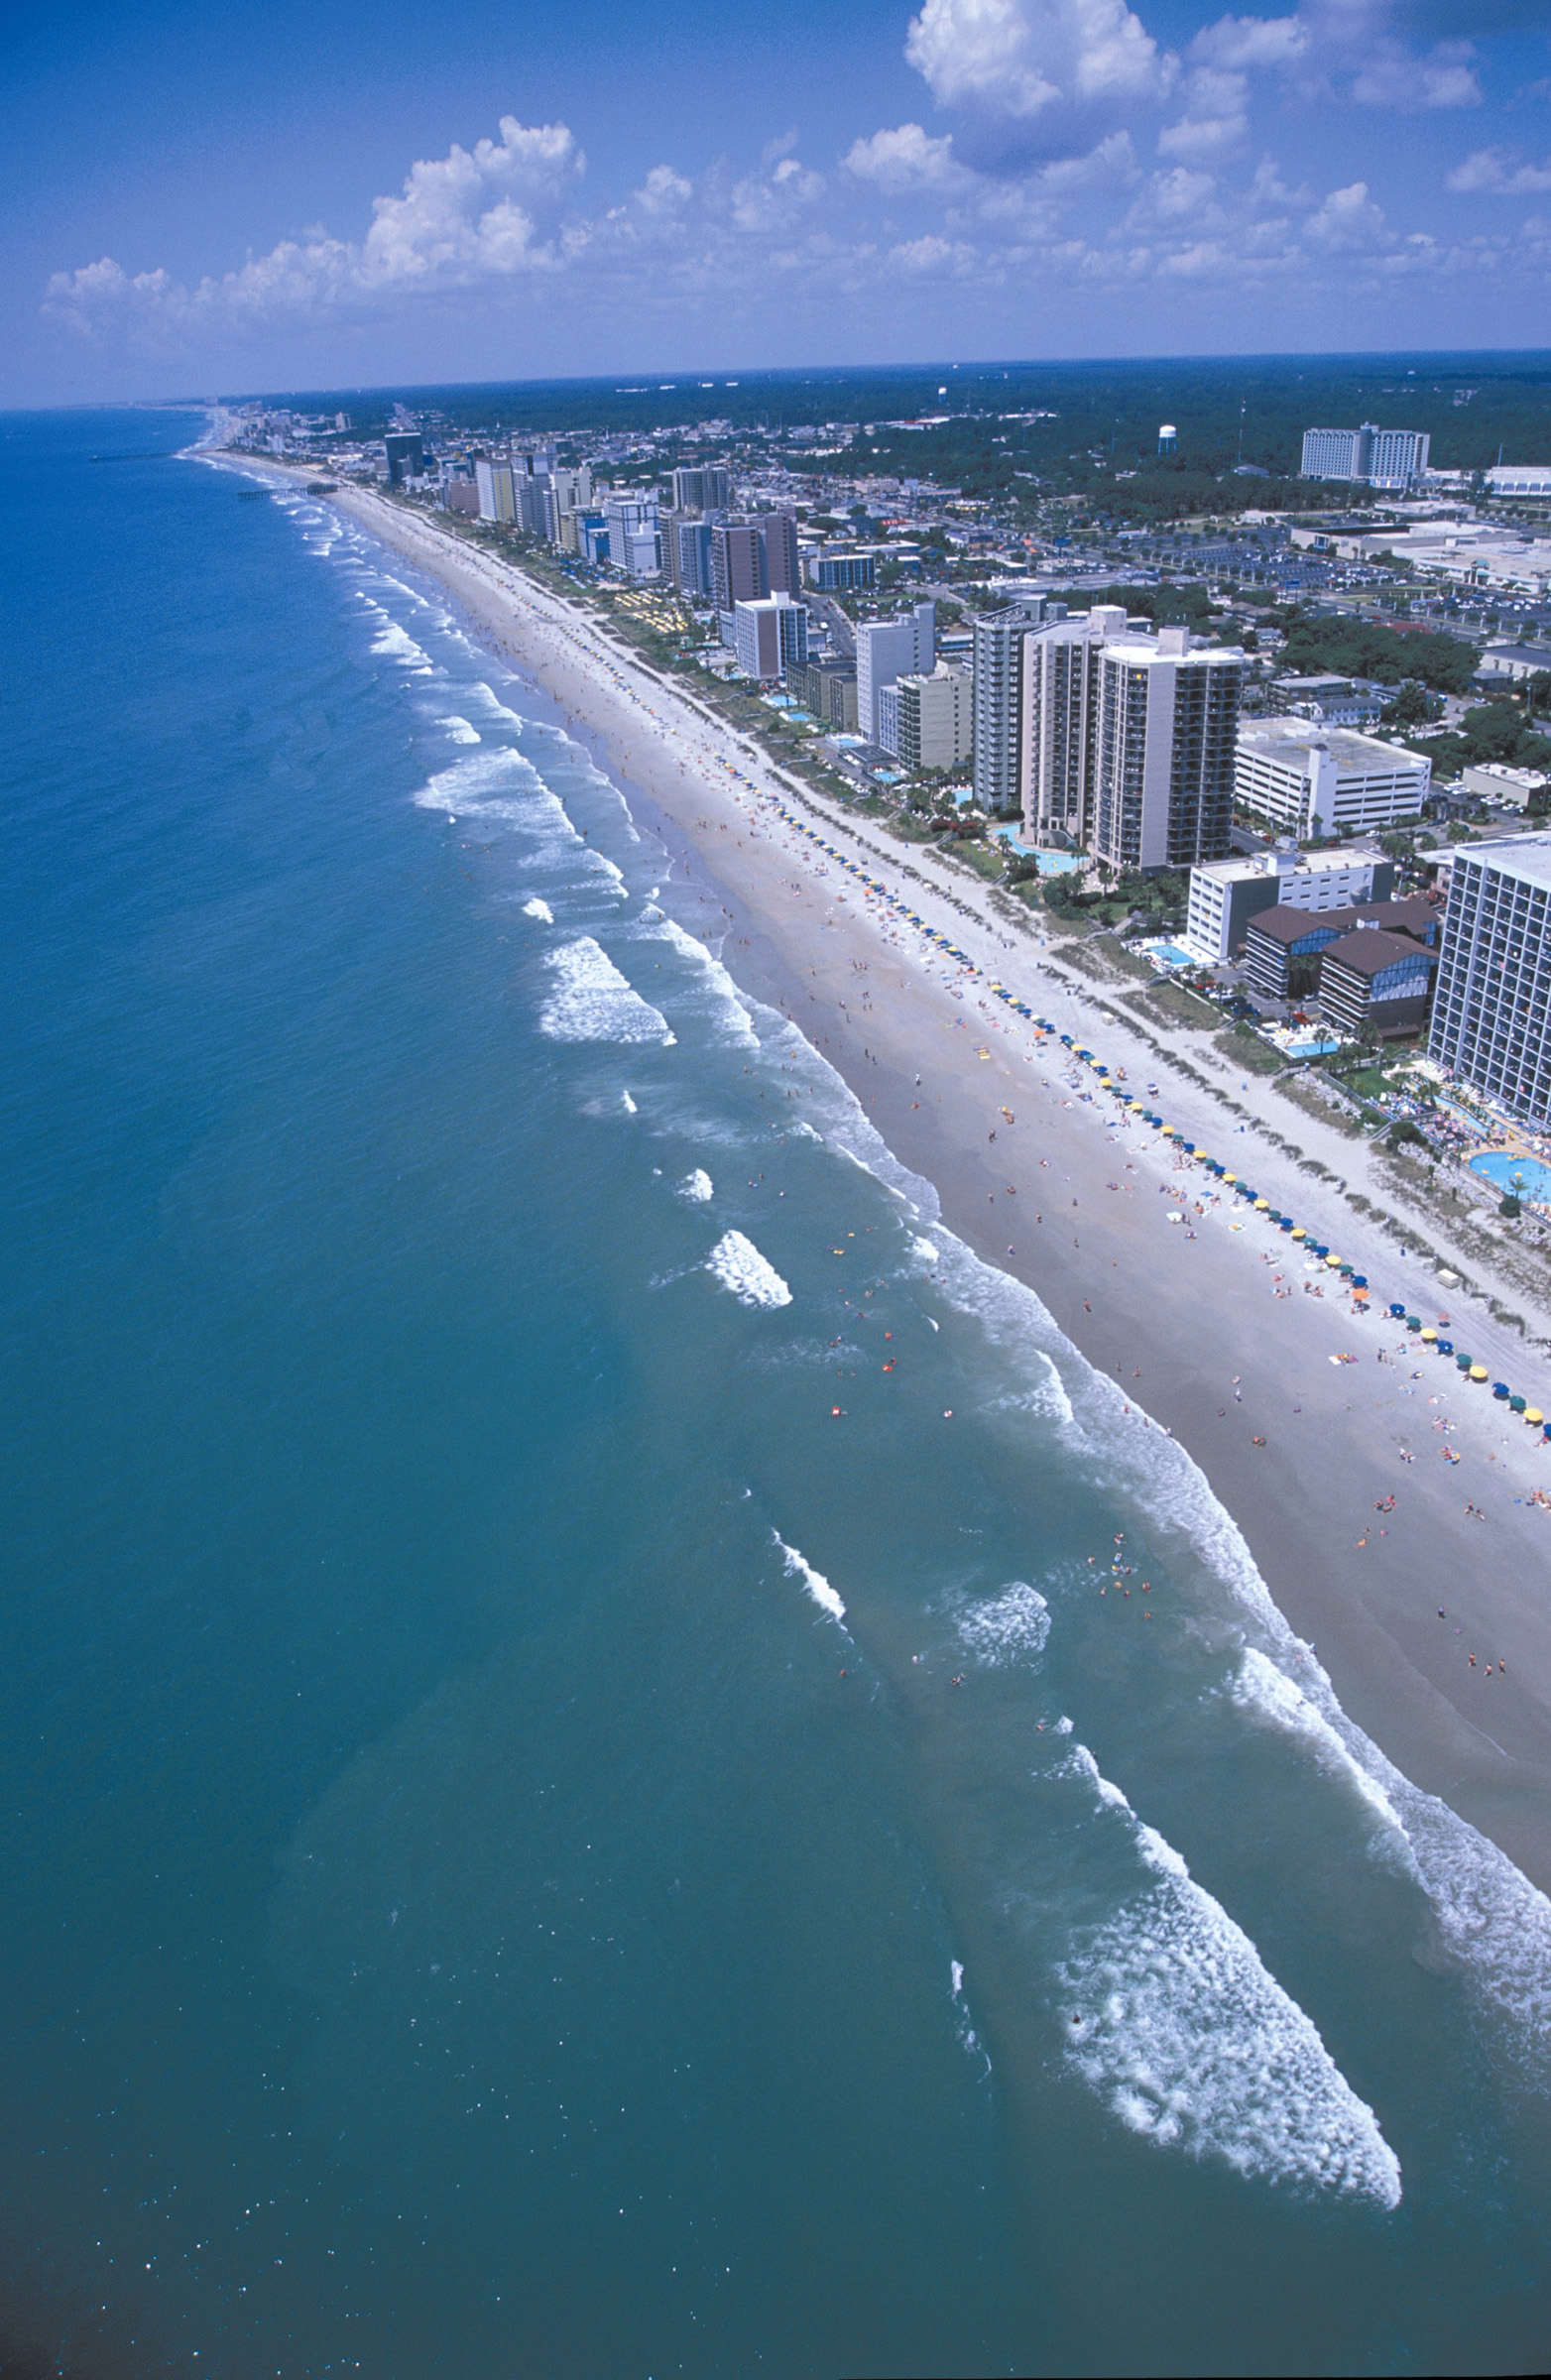 Free Nights In Myrtle Beach South Carolina Where Fun Vacations Are Affordable